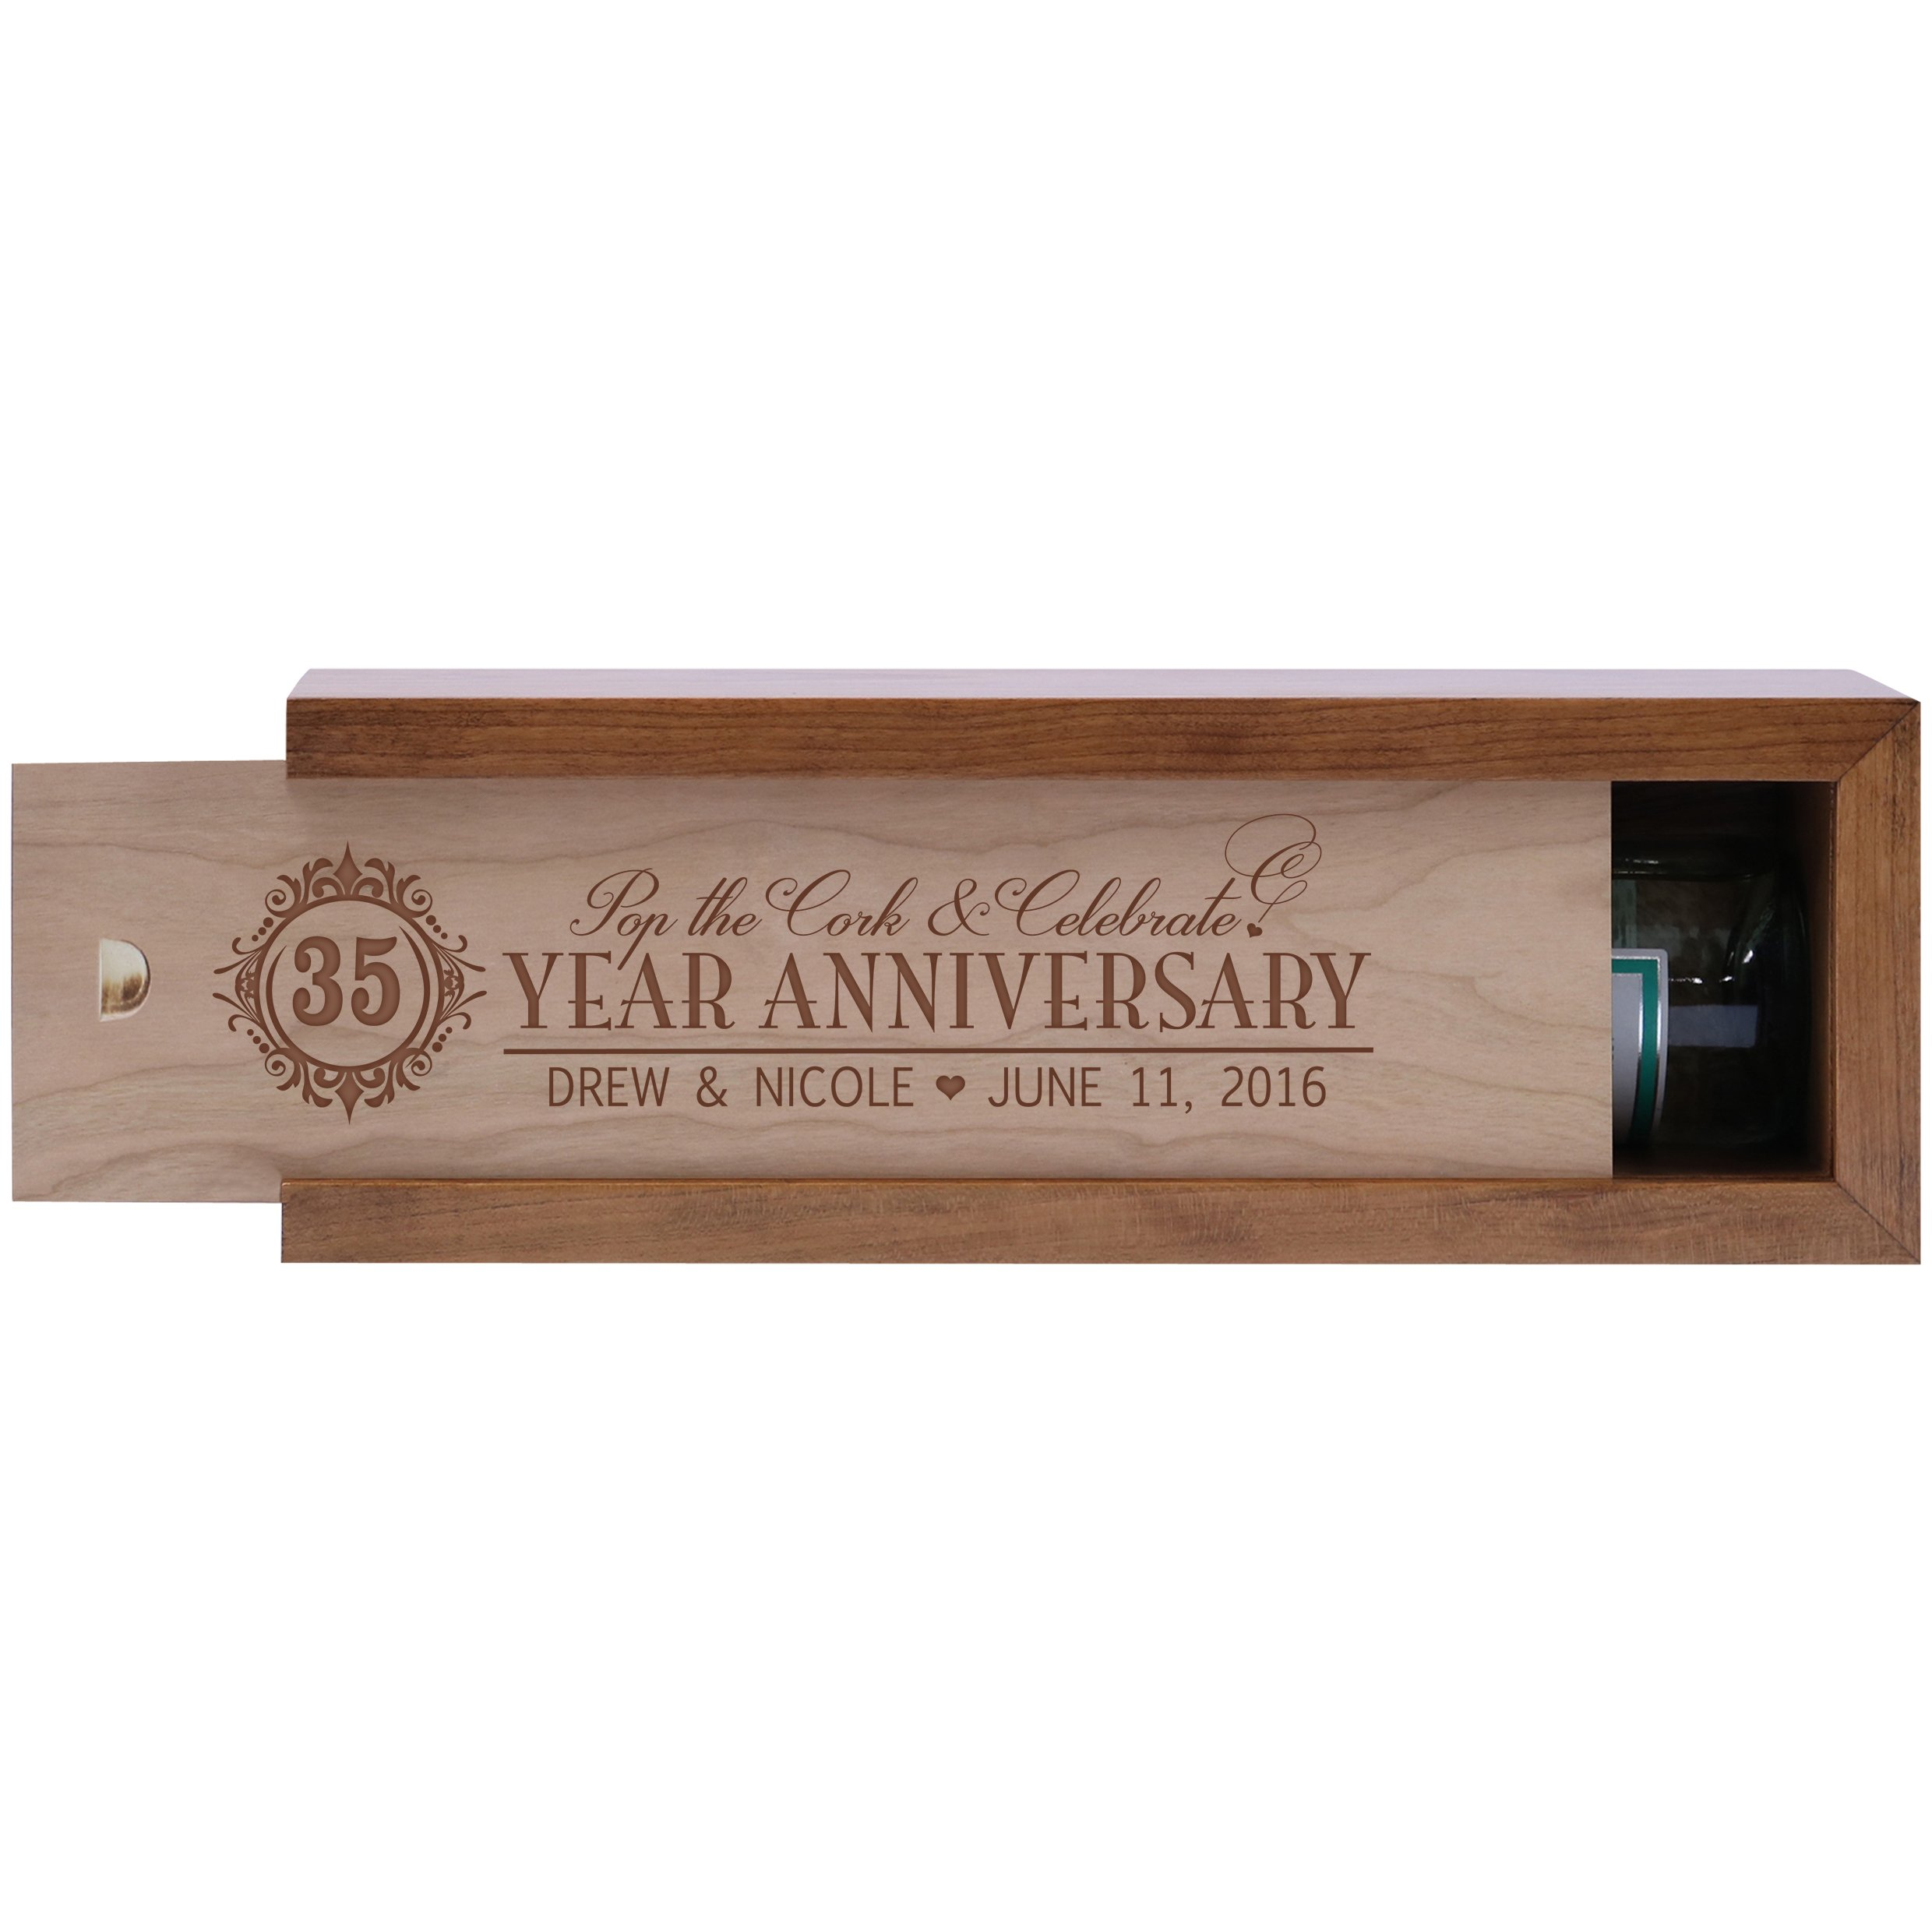 Personalized 35th year anniversary gift wood wine box Custom engraved gift for husband wife boyfriend or girlfriend Exclusively by American Wine Krafts (Cherry Box with Unfinished Cherry Lid) by American Wine Krafts (Image #1)